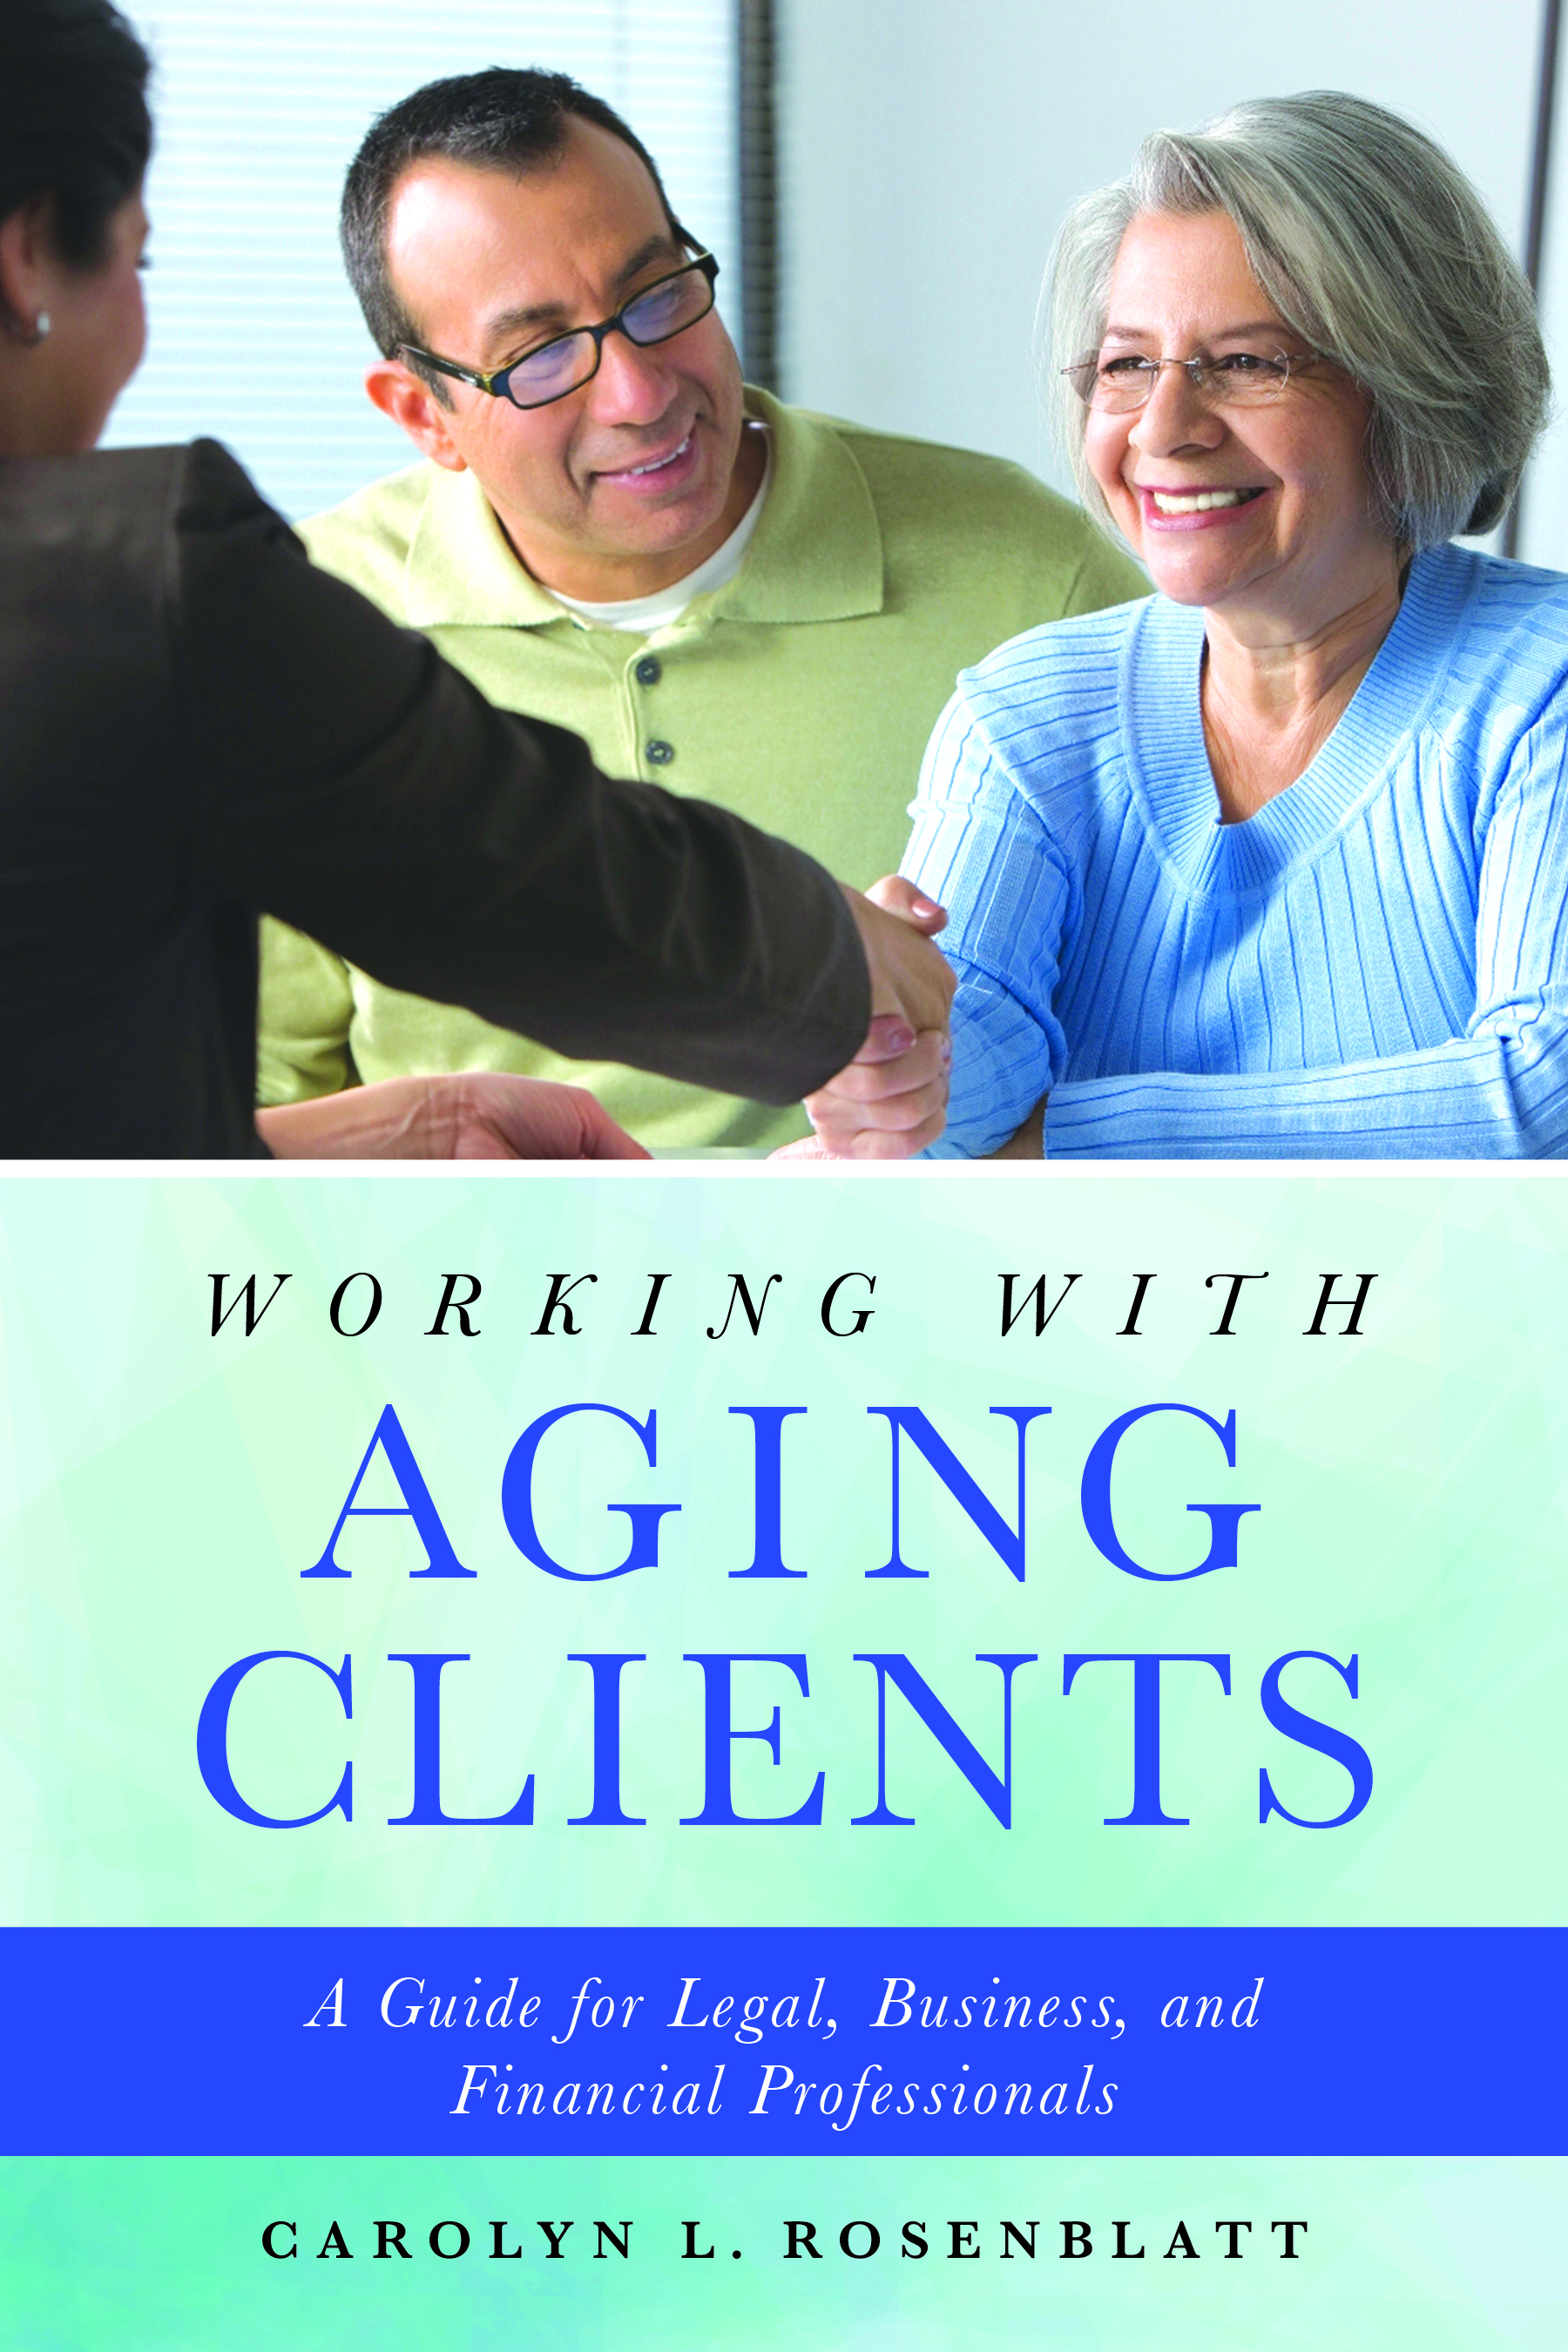 Working with Aging Clients